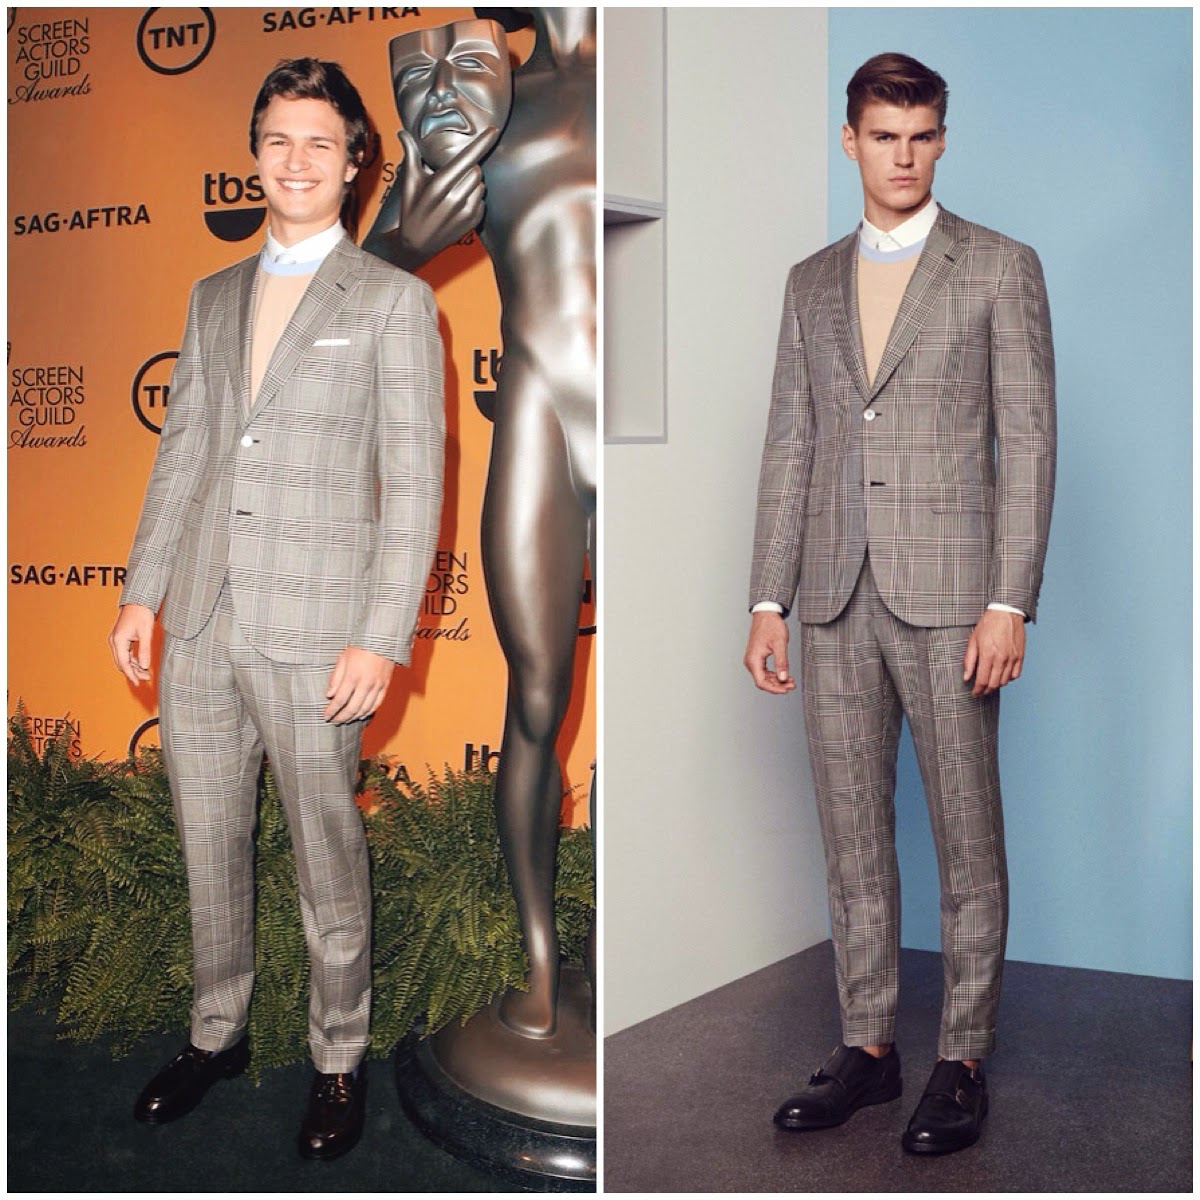 Ansel-Elgort-wears-Brioni-Spring-Summer-2015-grey-check-suit-to-21st-Annual-Screen-Actors-Guild-Award-Nominations-10th-December-2014